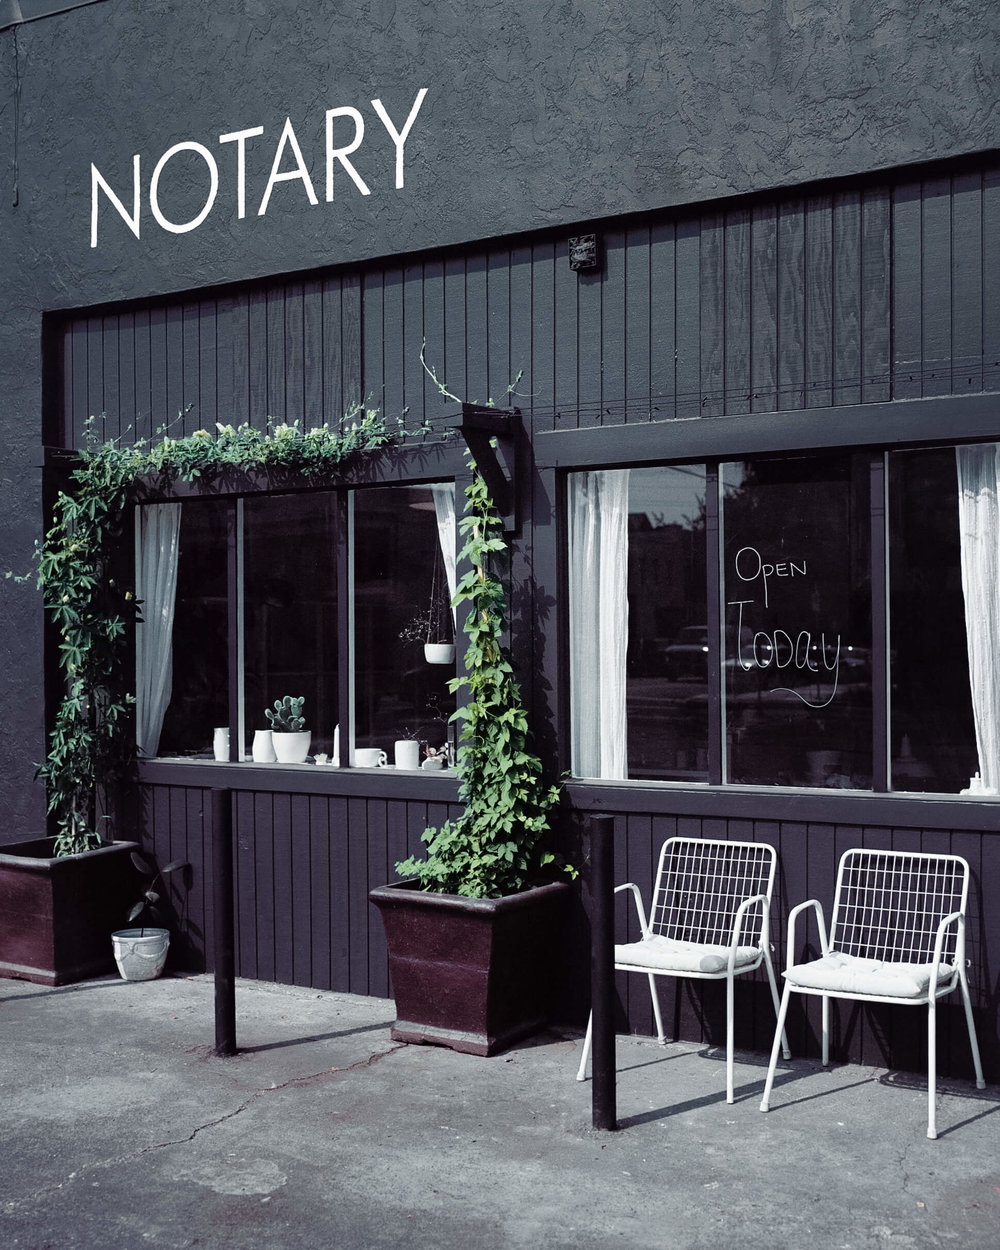 visit the shop - 8035 Southeast 13th AvenuePortland, OR, 97202United StatesMonday: 9 AM - 5 PMWednesday: 9 AM - 5 PMFriday: 9 AM - 5 PMPhone: (503) 869-3352Email: notaryceramics@gmail.com